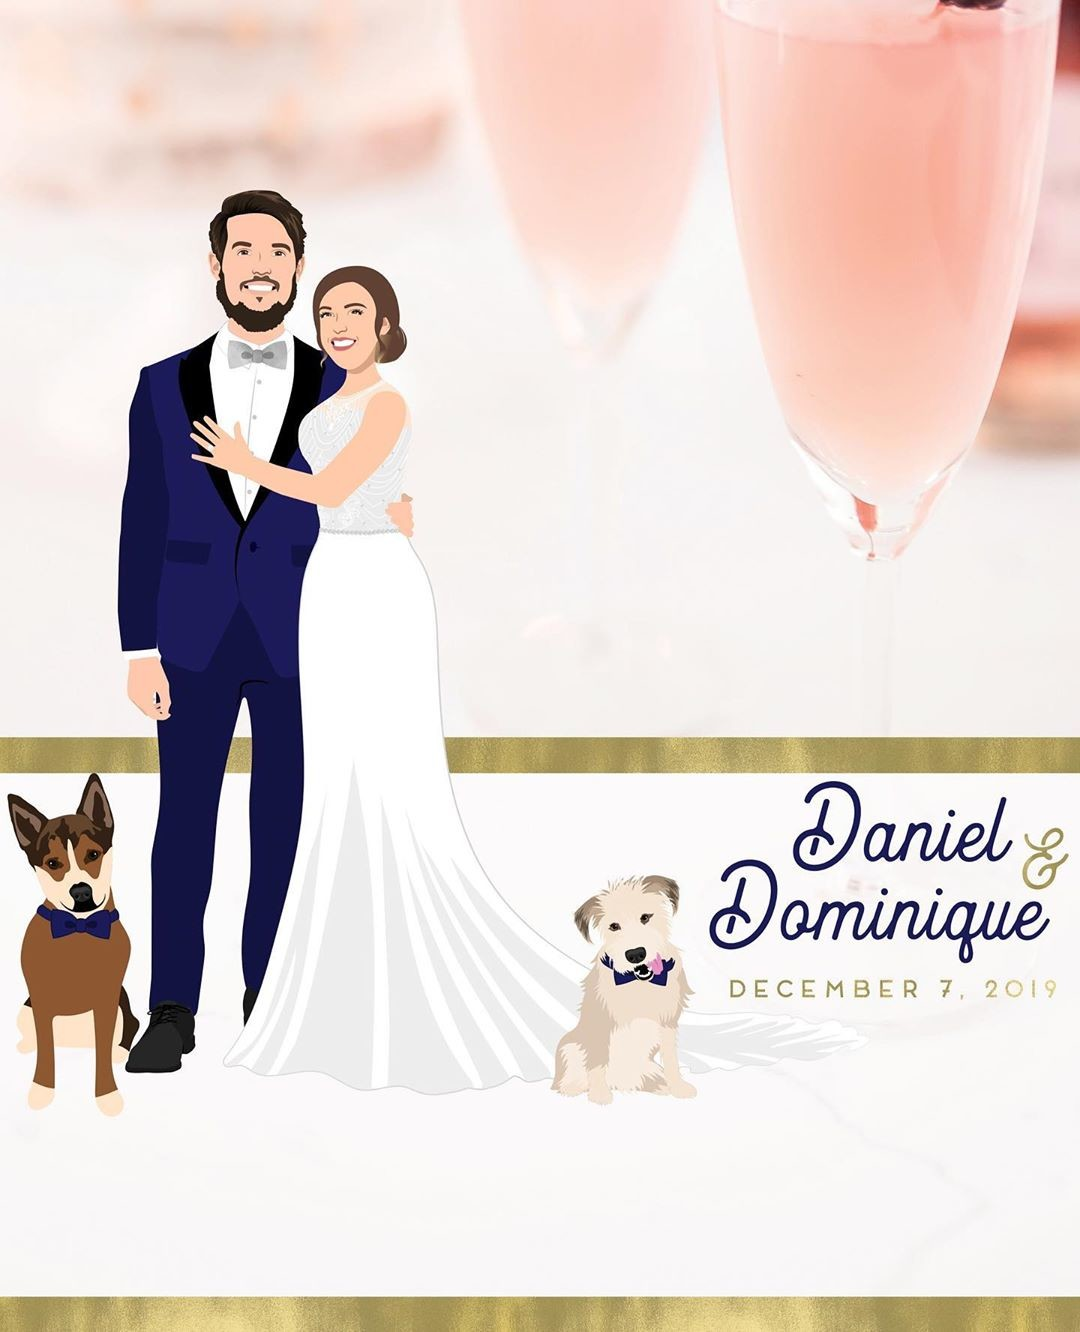 Daniel and Dominique had the right idea when they ordered a custom Snapchat filter from us! 😉 If you're not big on traditional wedding